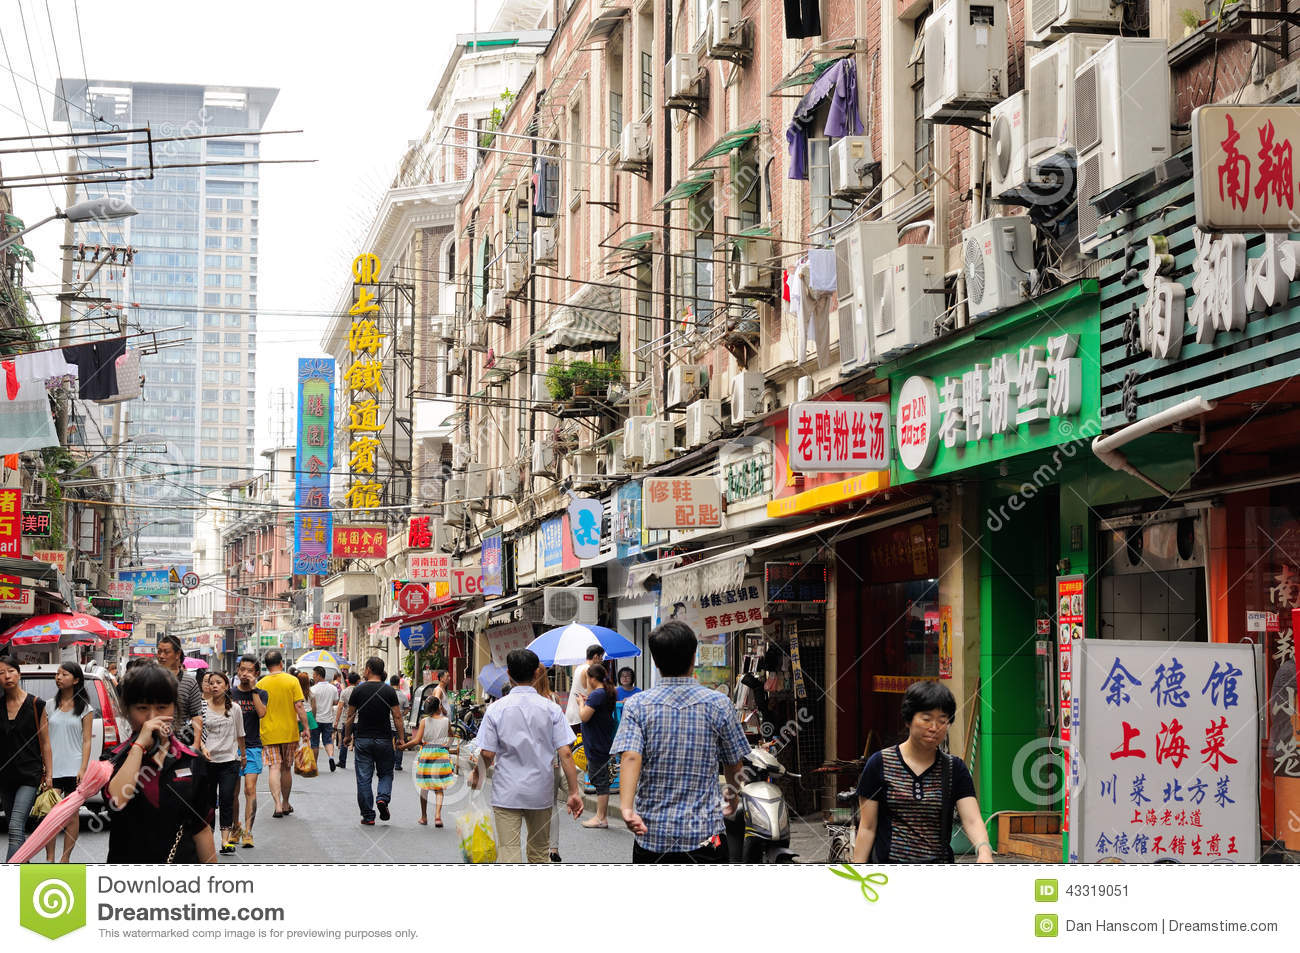 Busy street in China